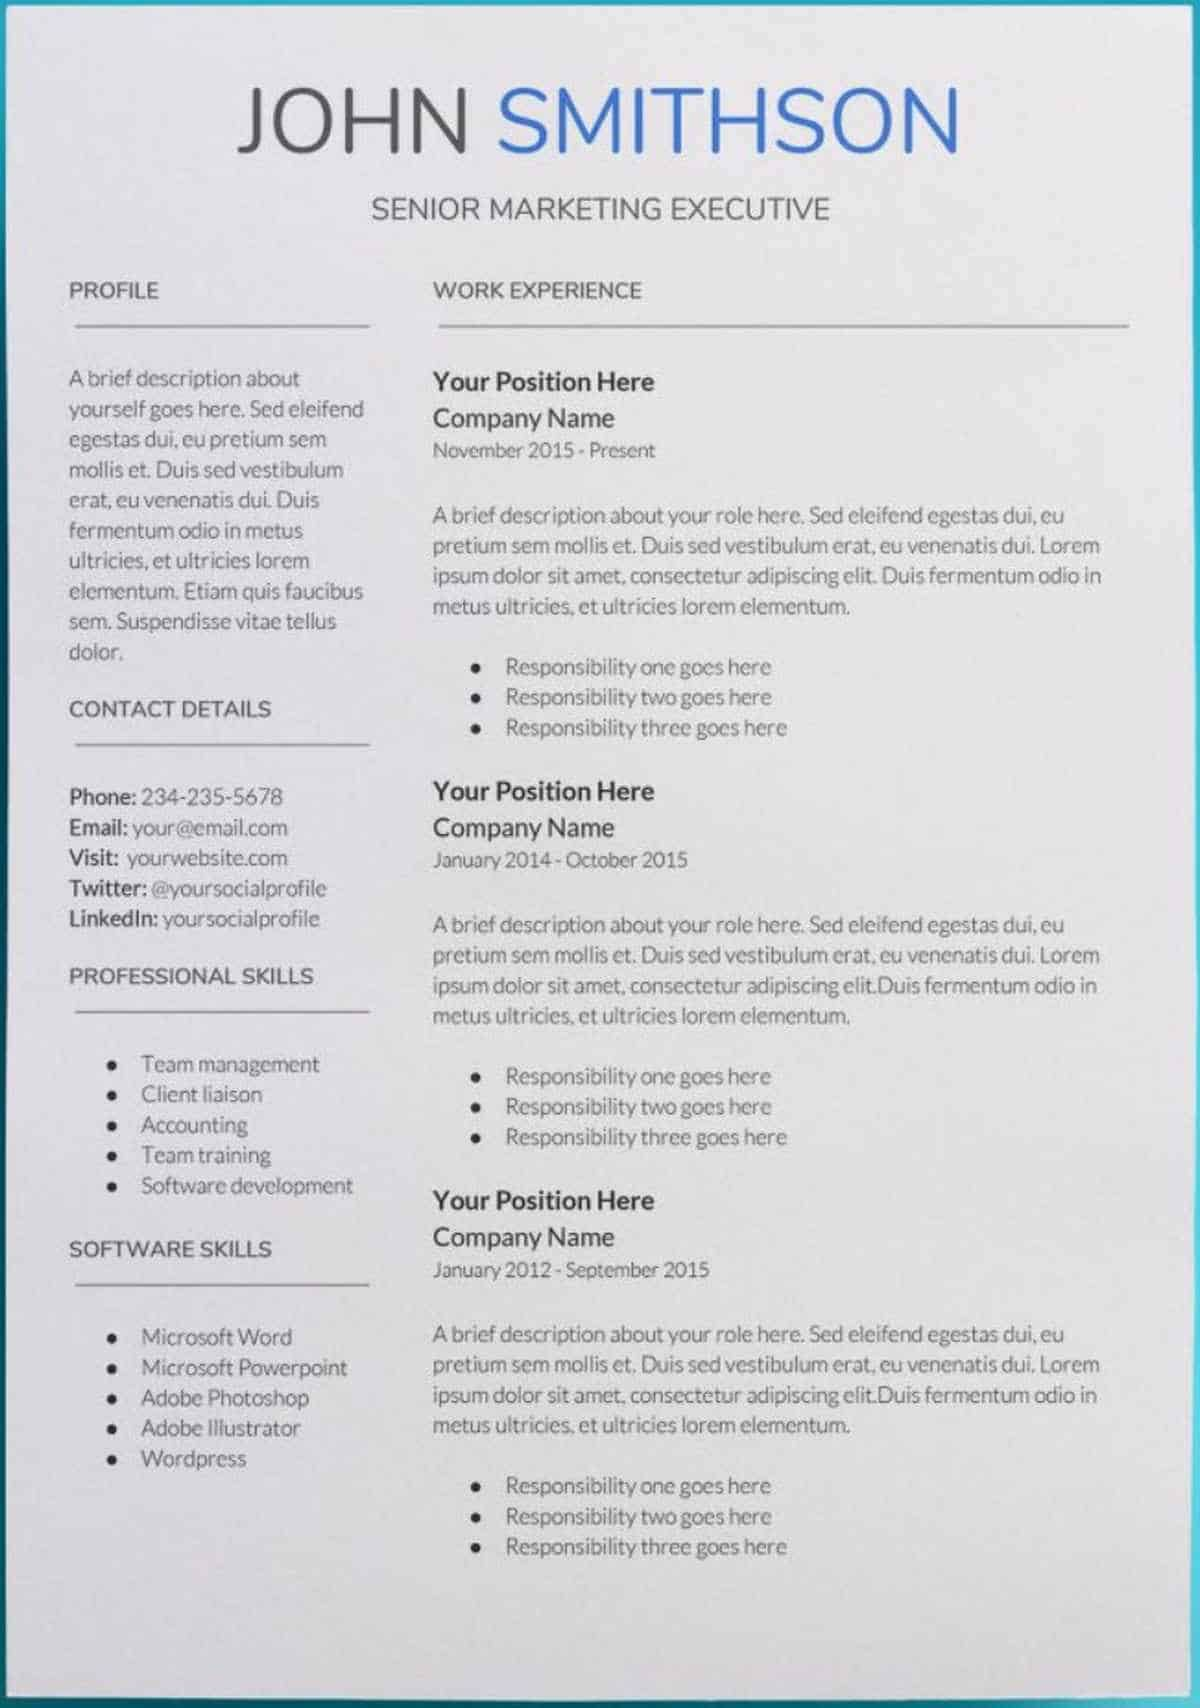 023 template ideas free resume templates word doc in